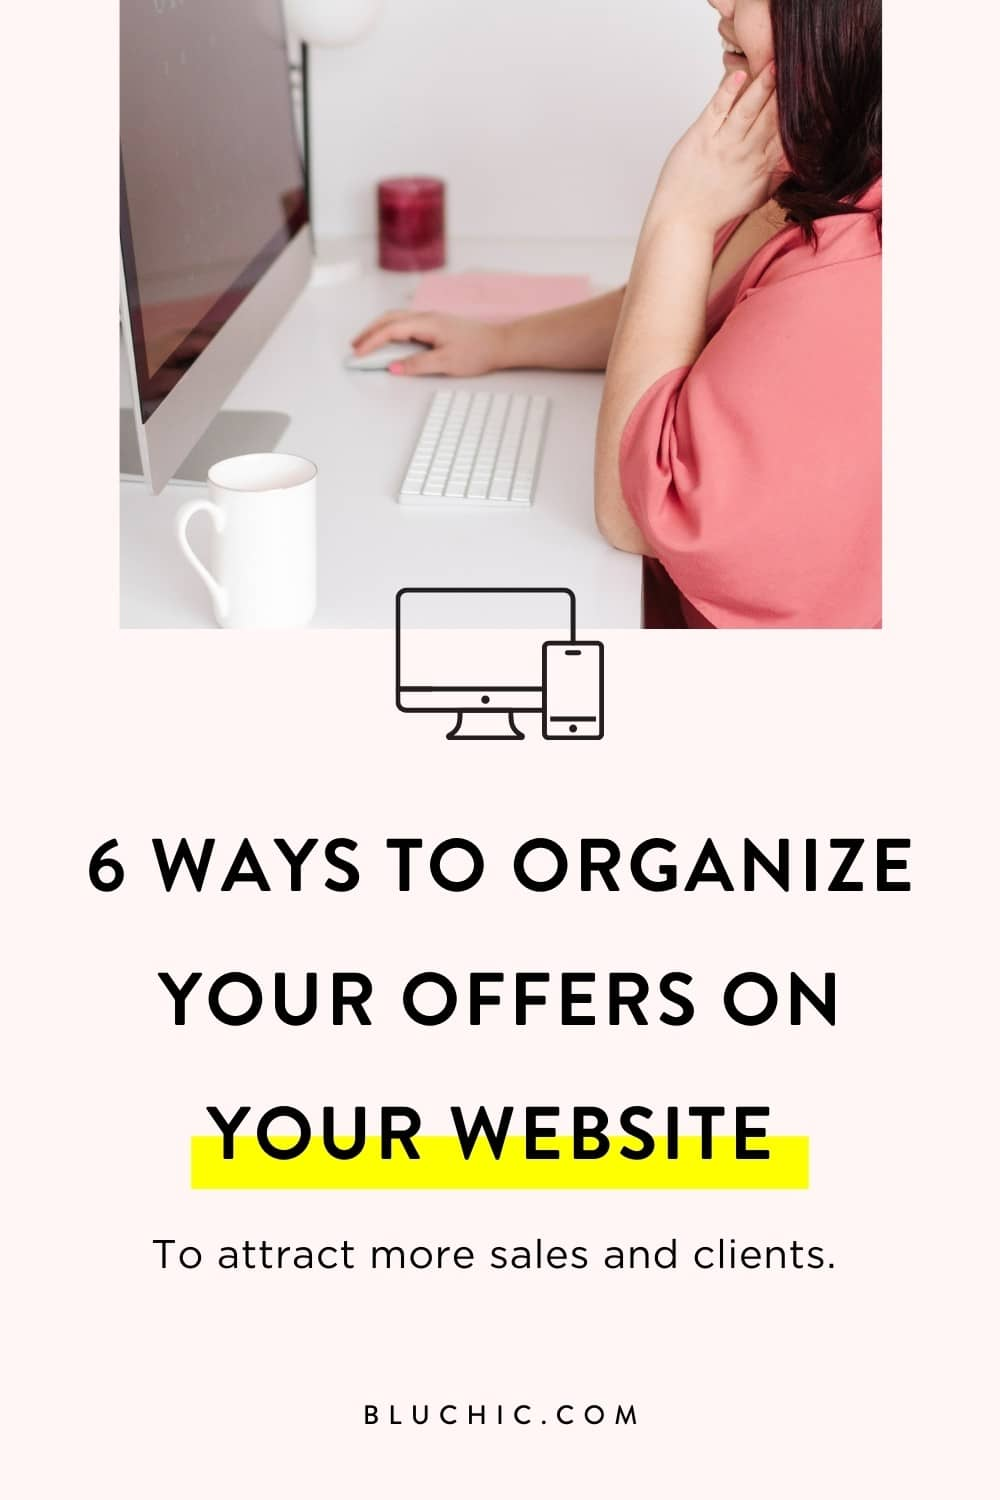 6 Ways to Organize Your Offers on Your Website   Does your business offer multiple services or products? Check out 6 ways to organize offers on your website to attract more sales and clients.